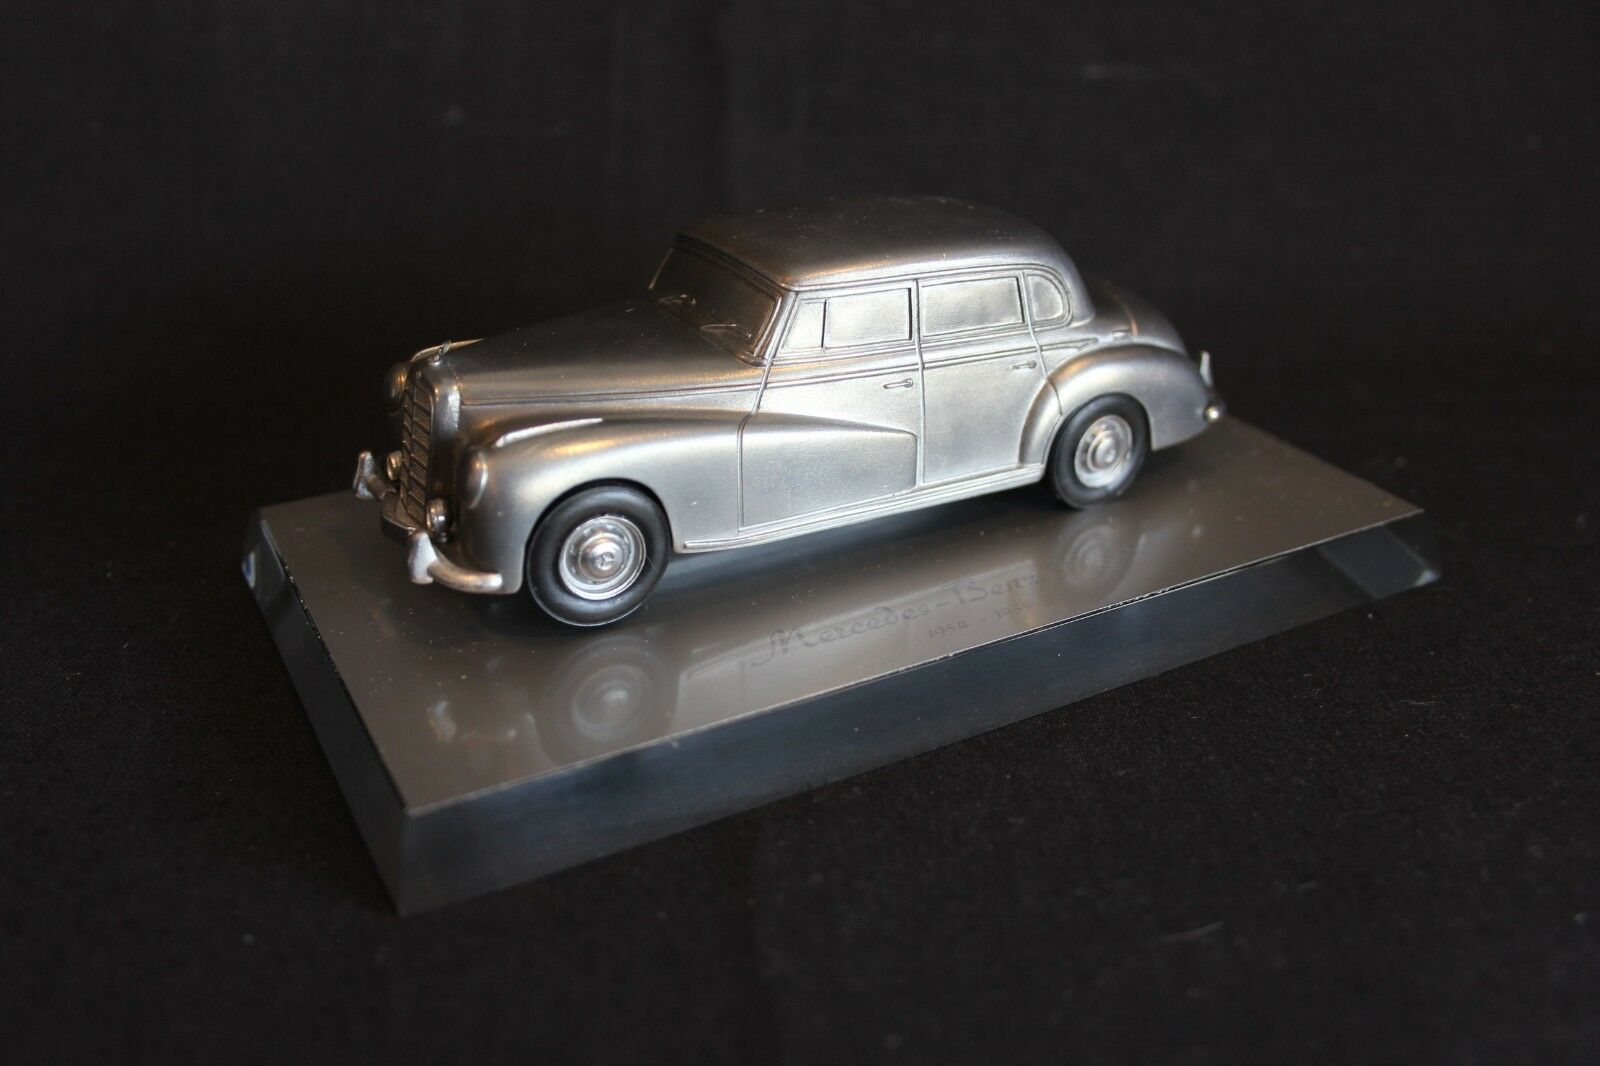 Amr mercedes - benz 300 b 1954 - 1955 1 43 in zinn (js)